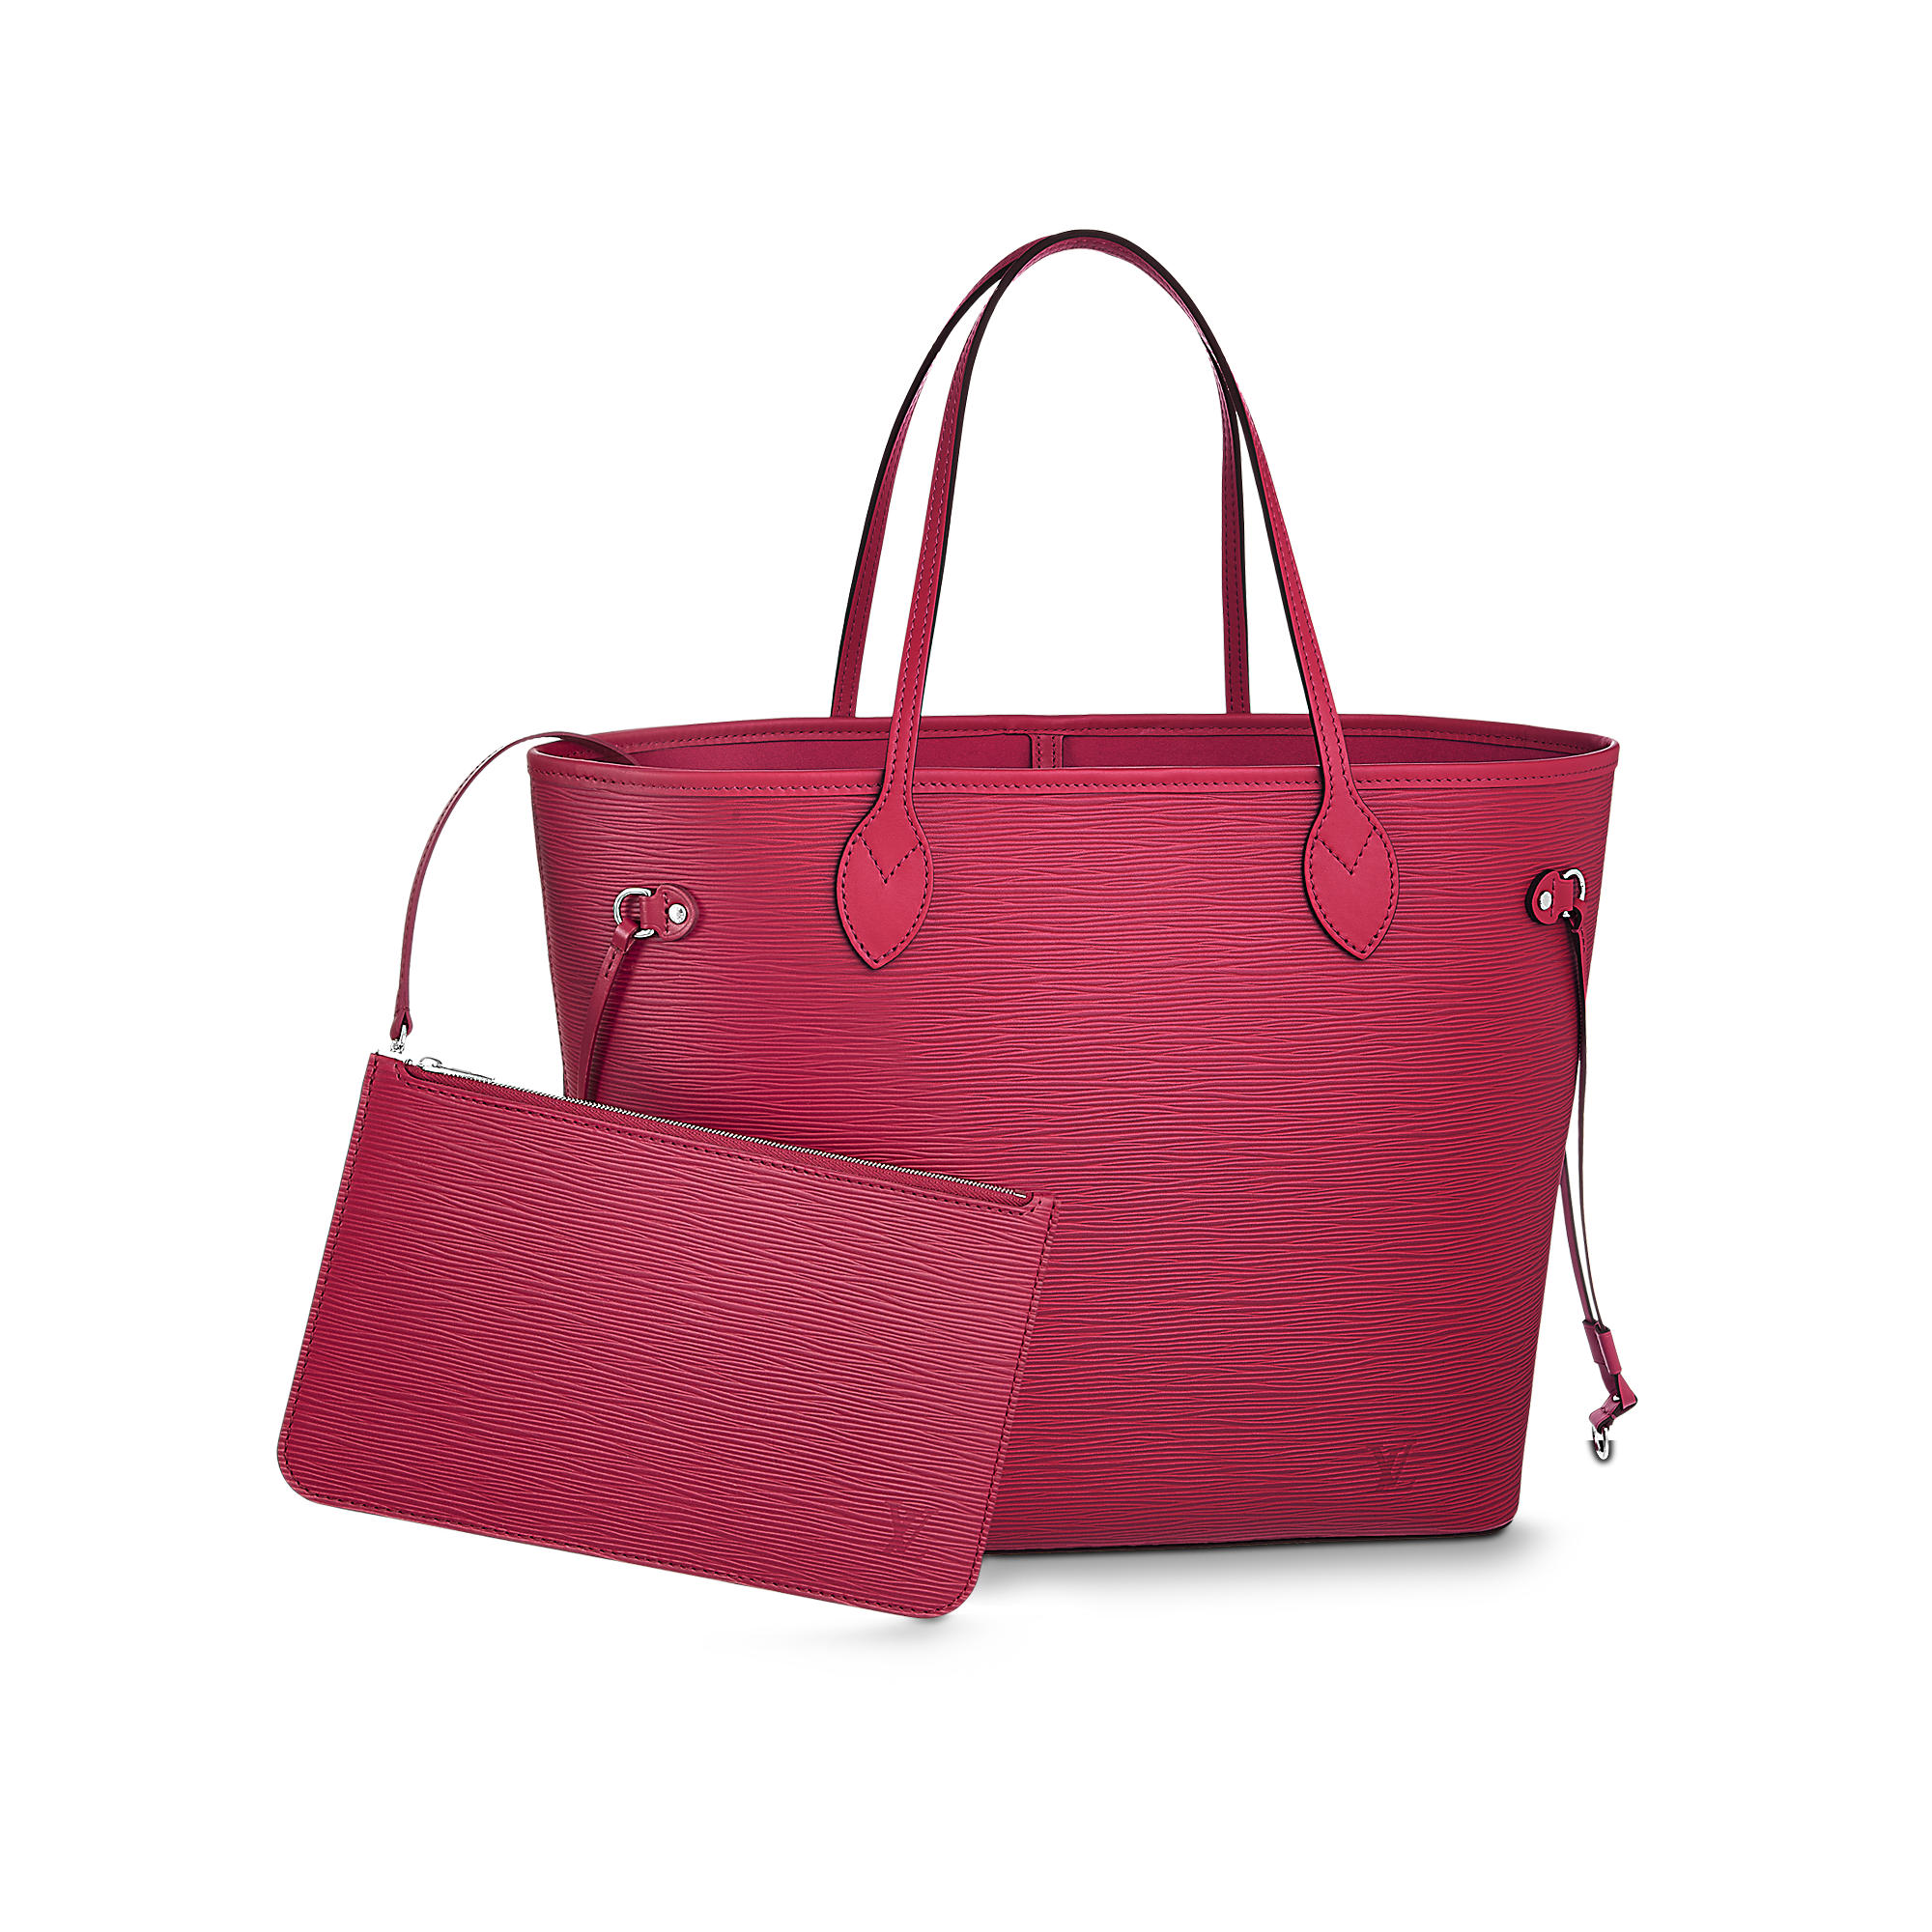 neverfull mm epi leather fucsia